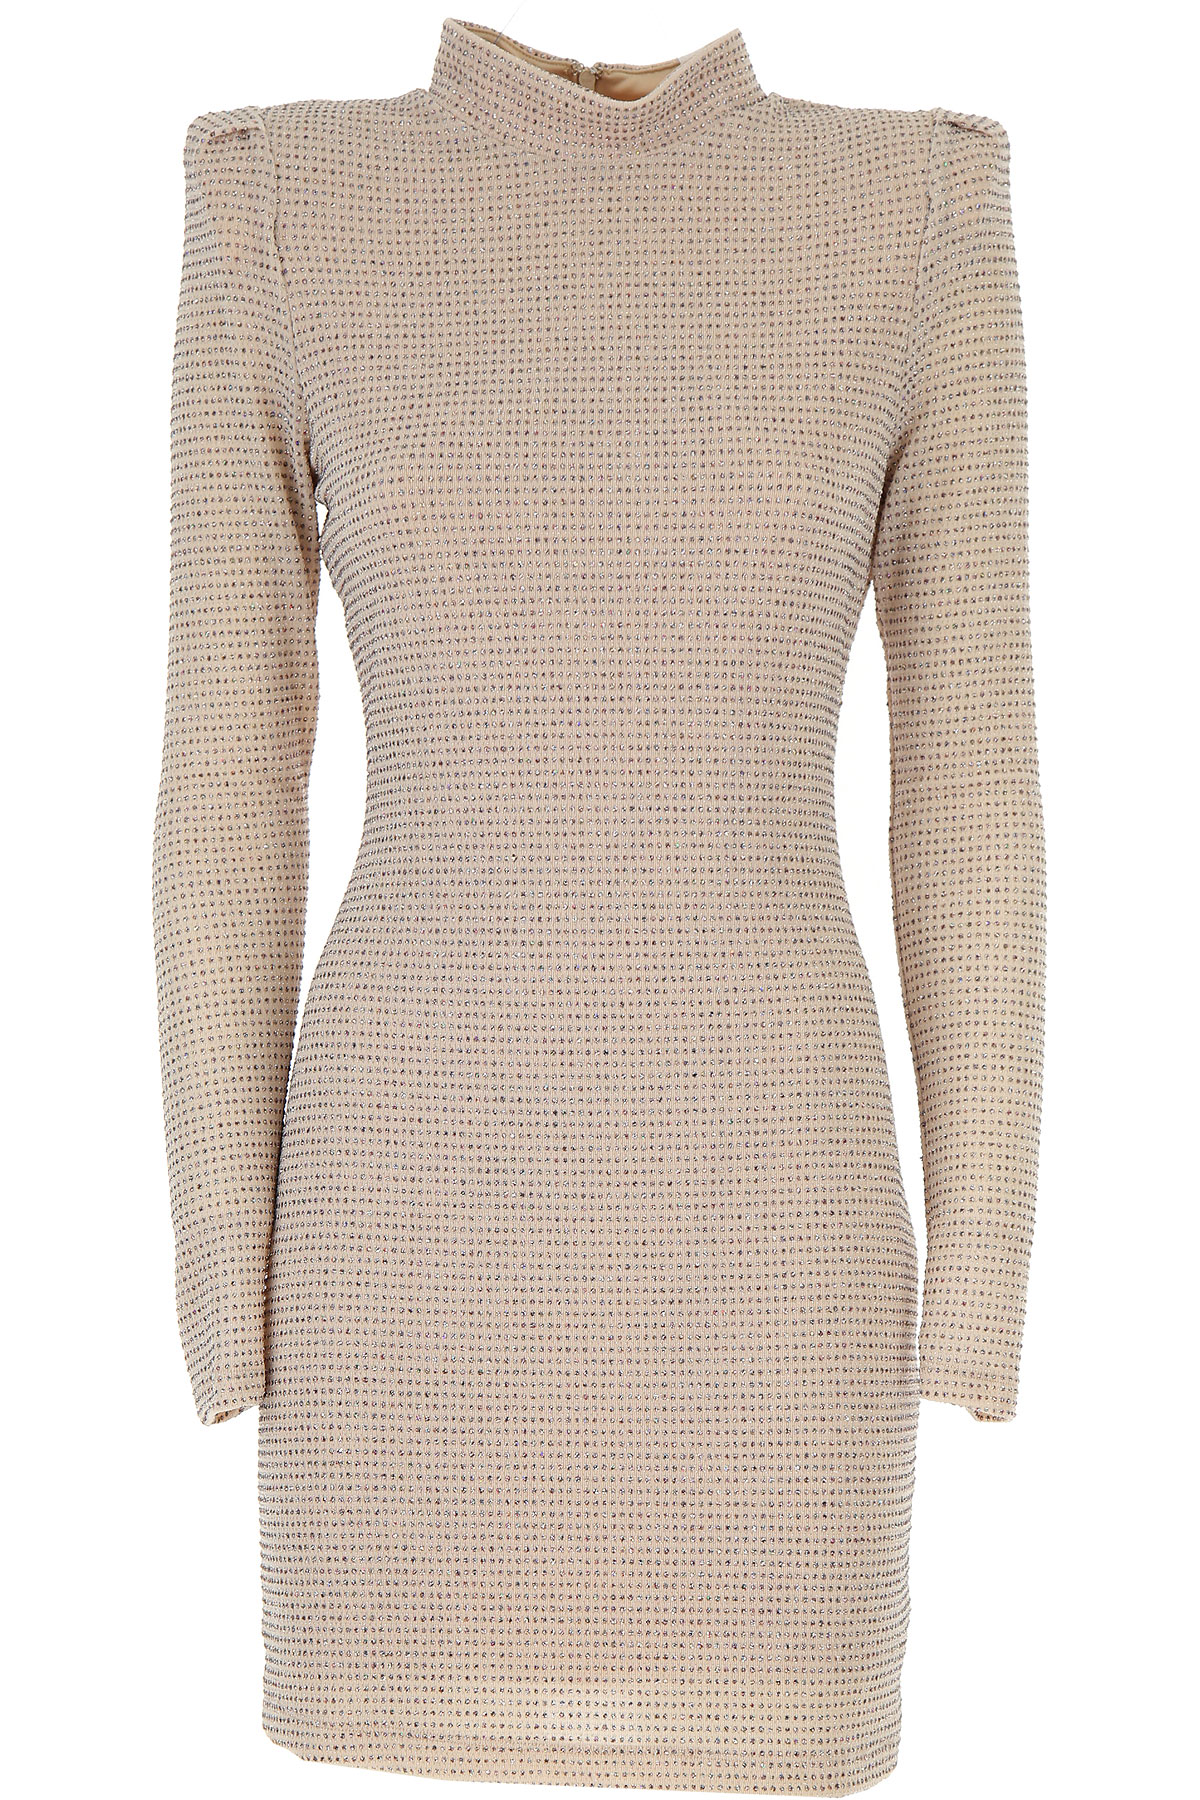 Aniye By Dress for Women, Evening Cocktail Party On Sale, Cream, polyamide, 2019, 6 8